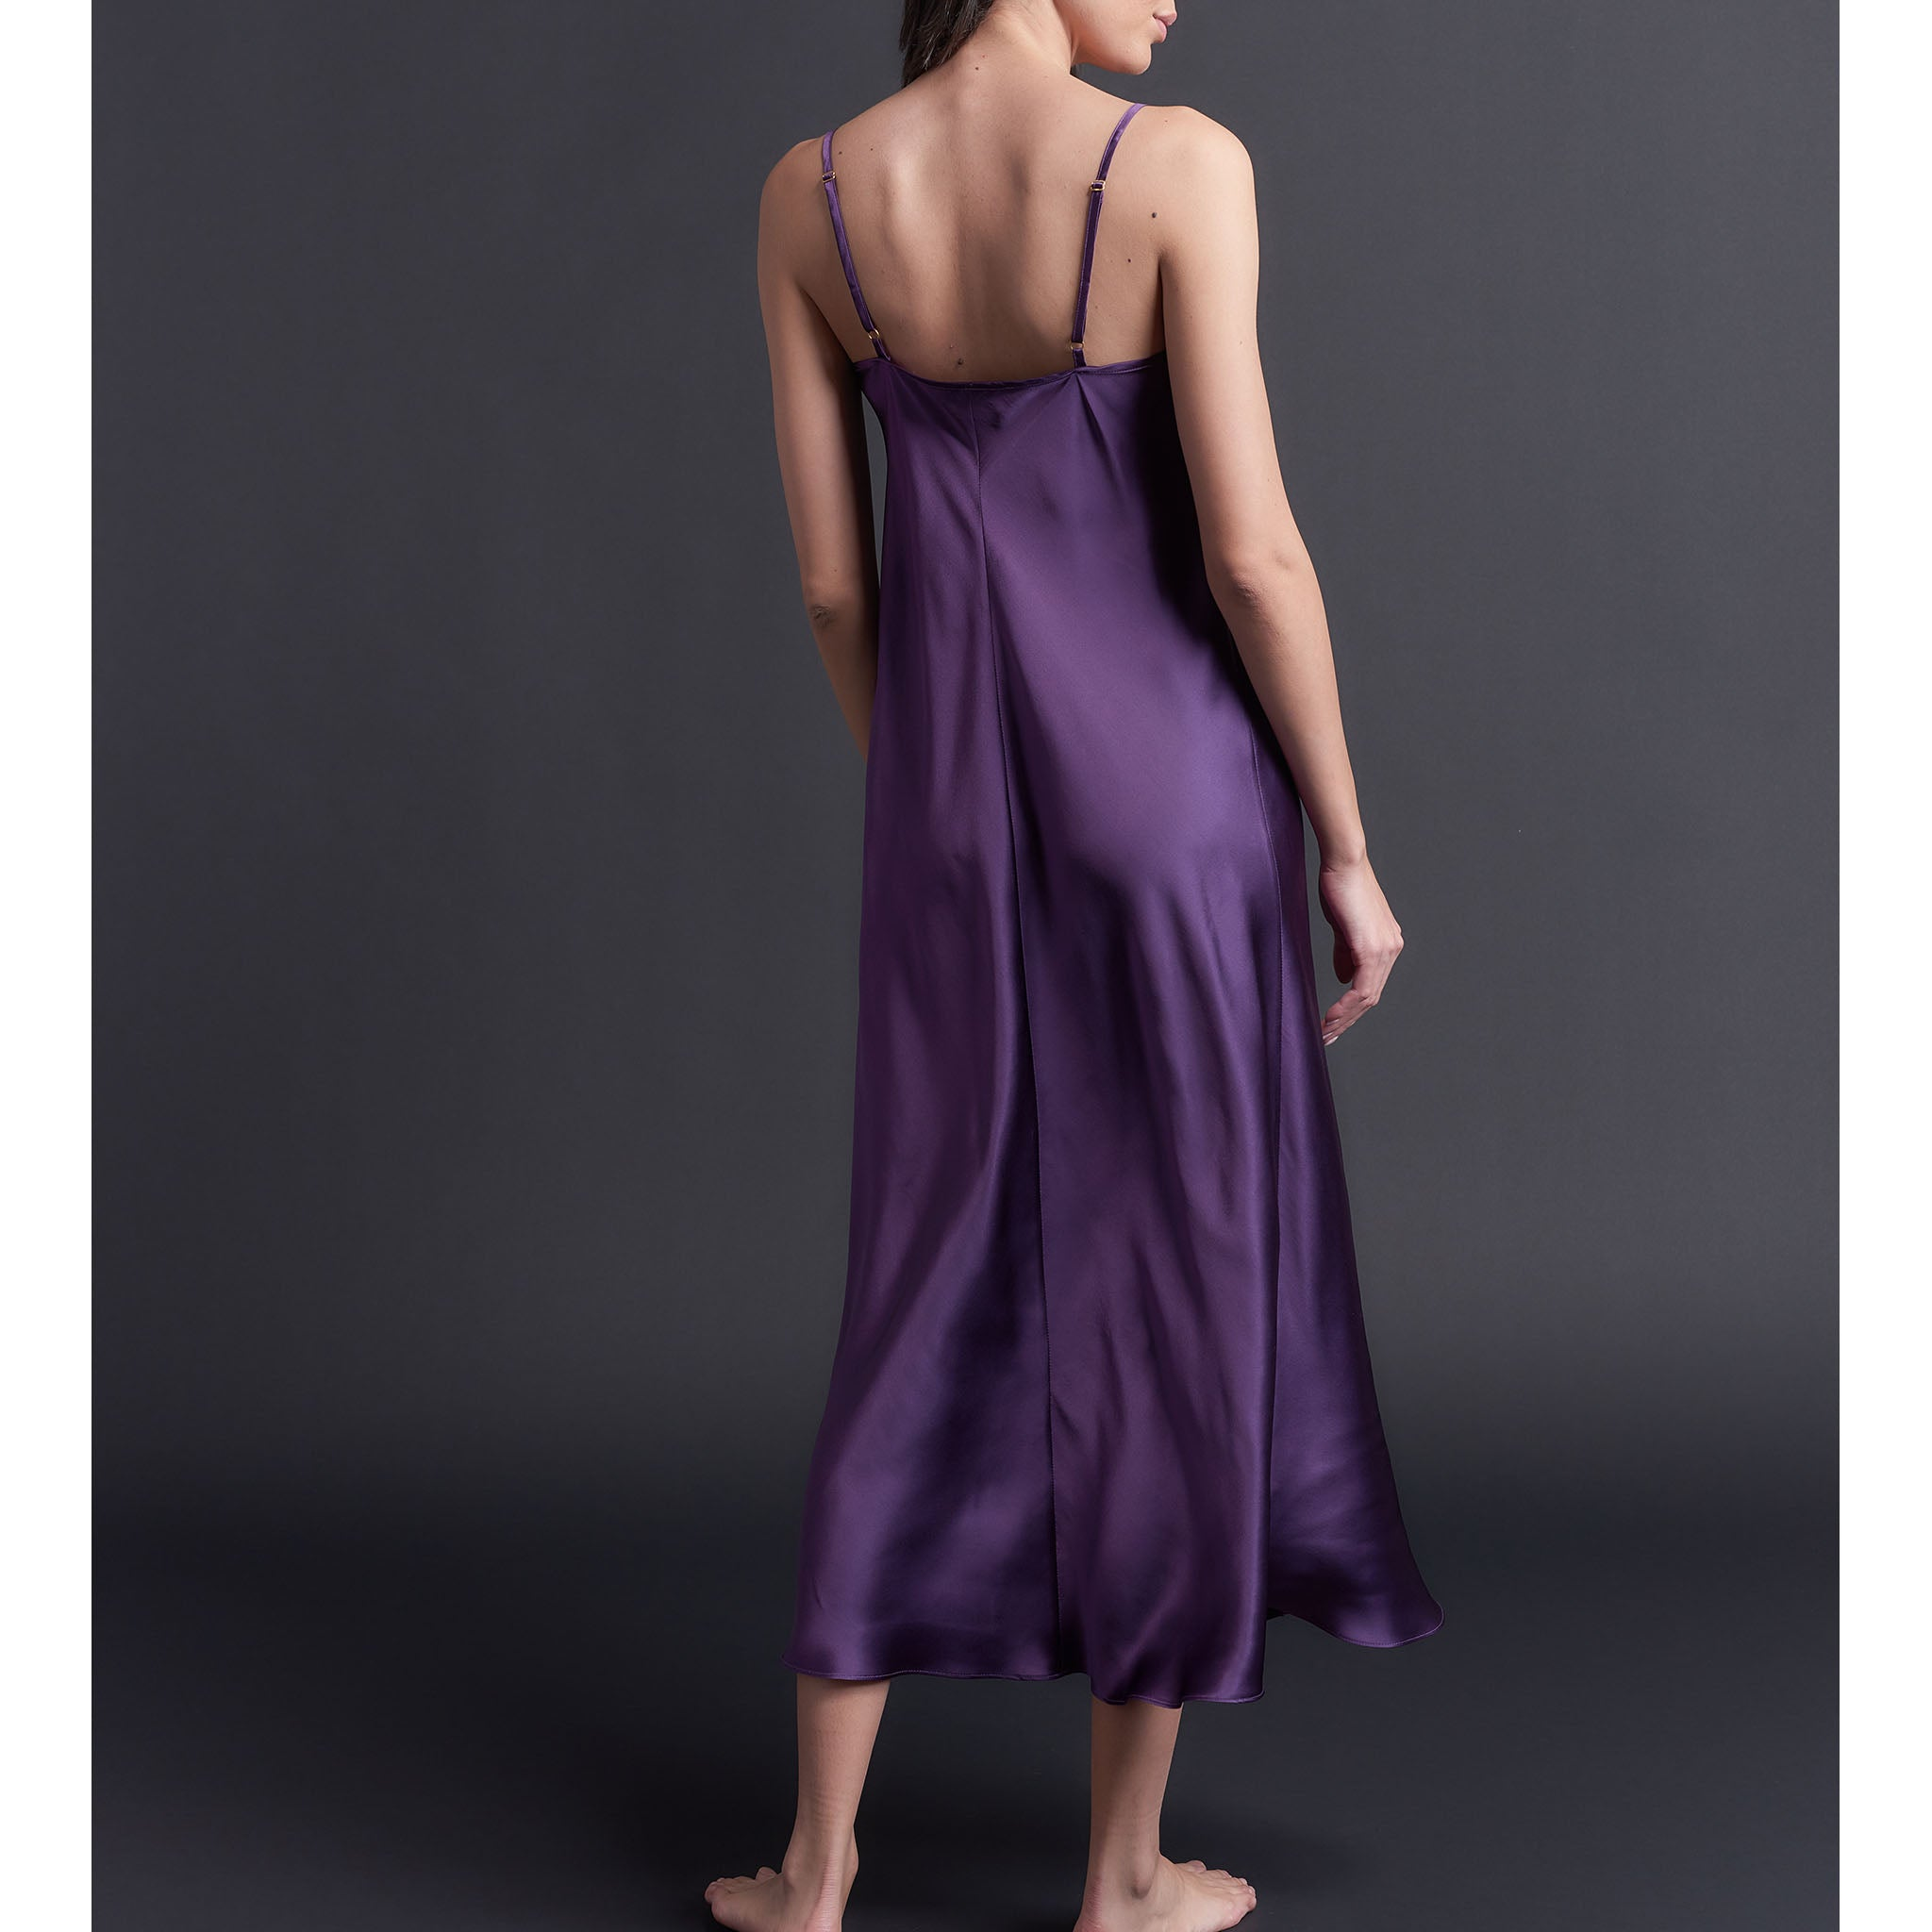 Paneled Slip Dress in Violet Bias Silk Charmeuse